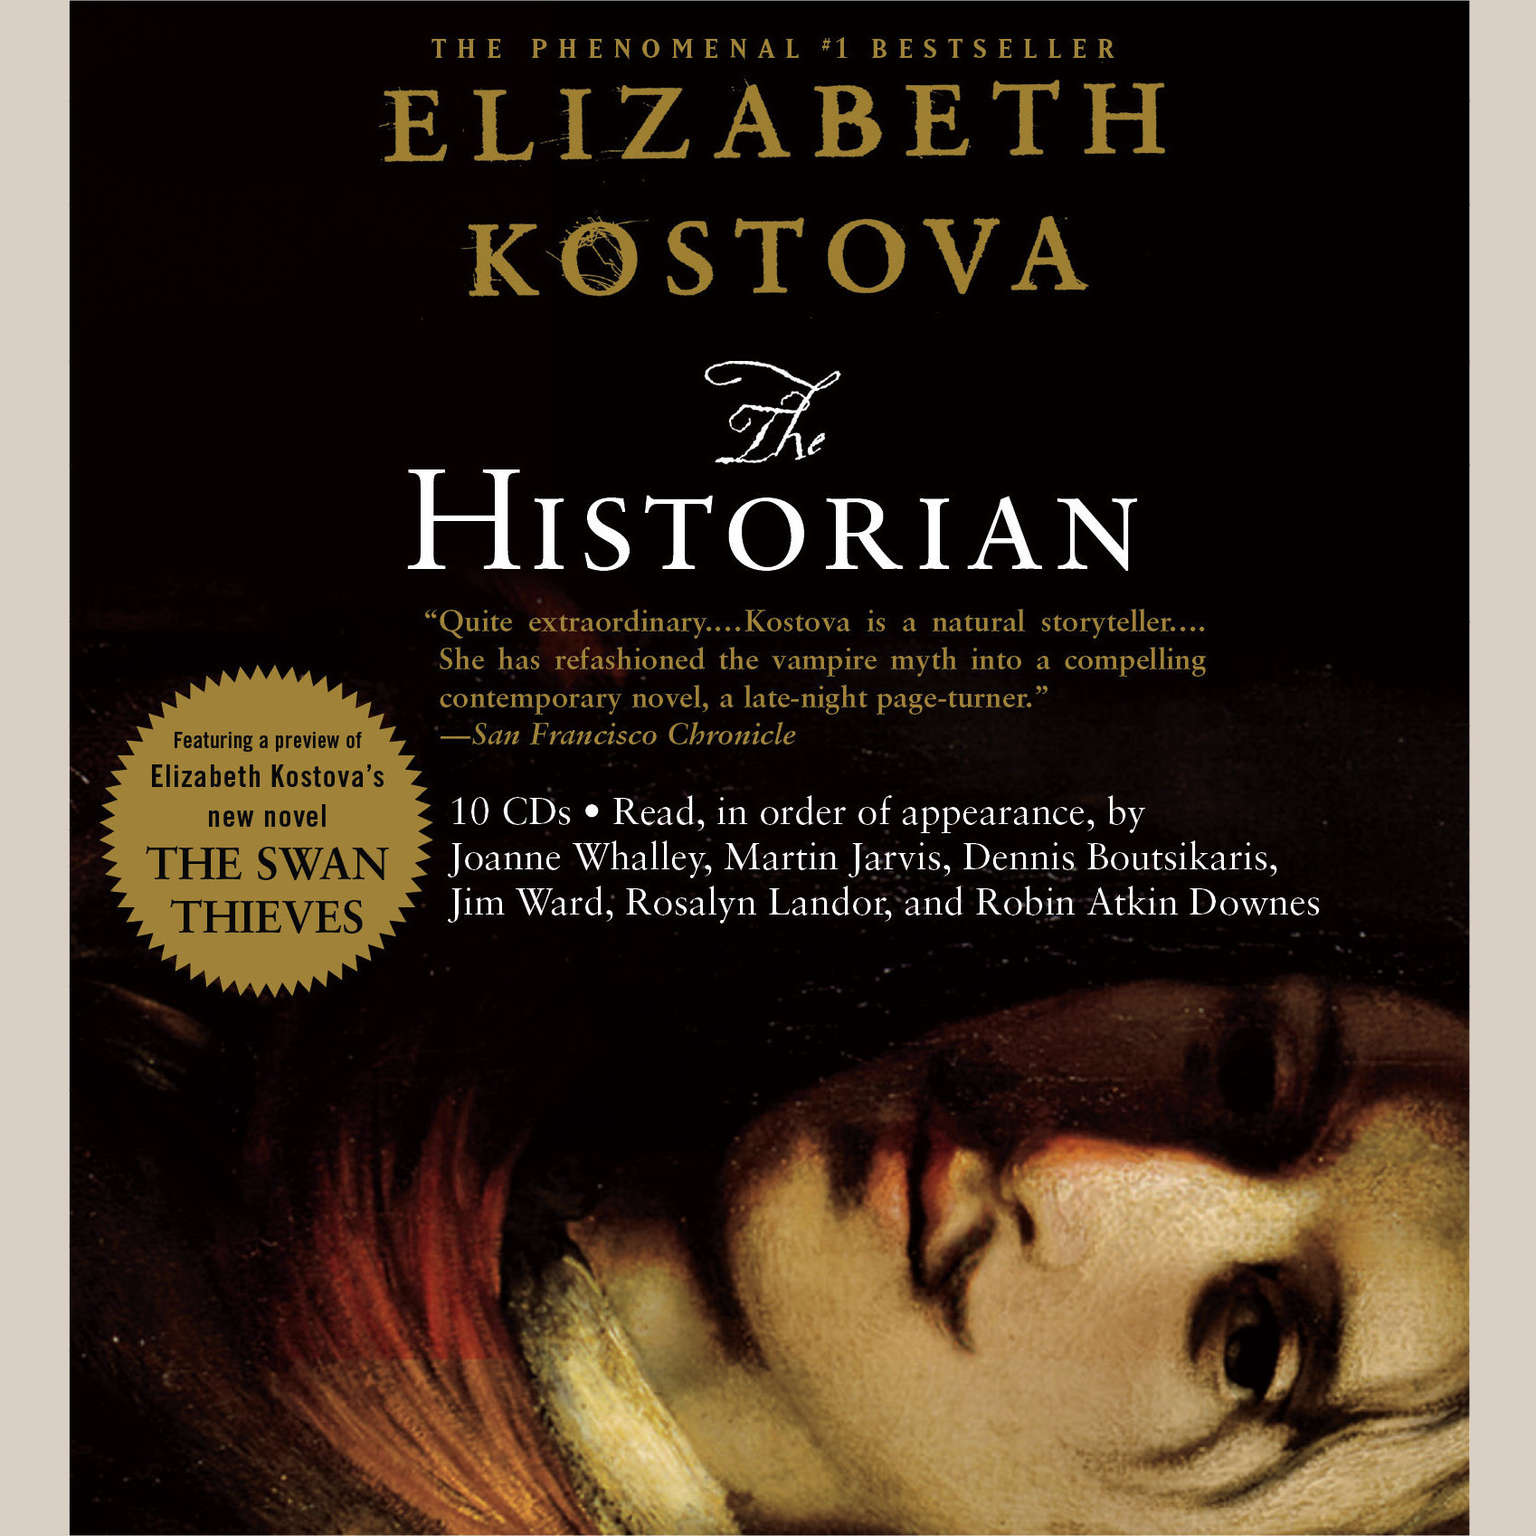 The Historian (abridged) Audiobook | Elizabeth Kostova | various ...